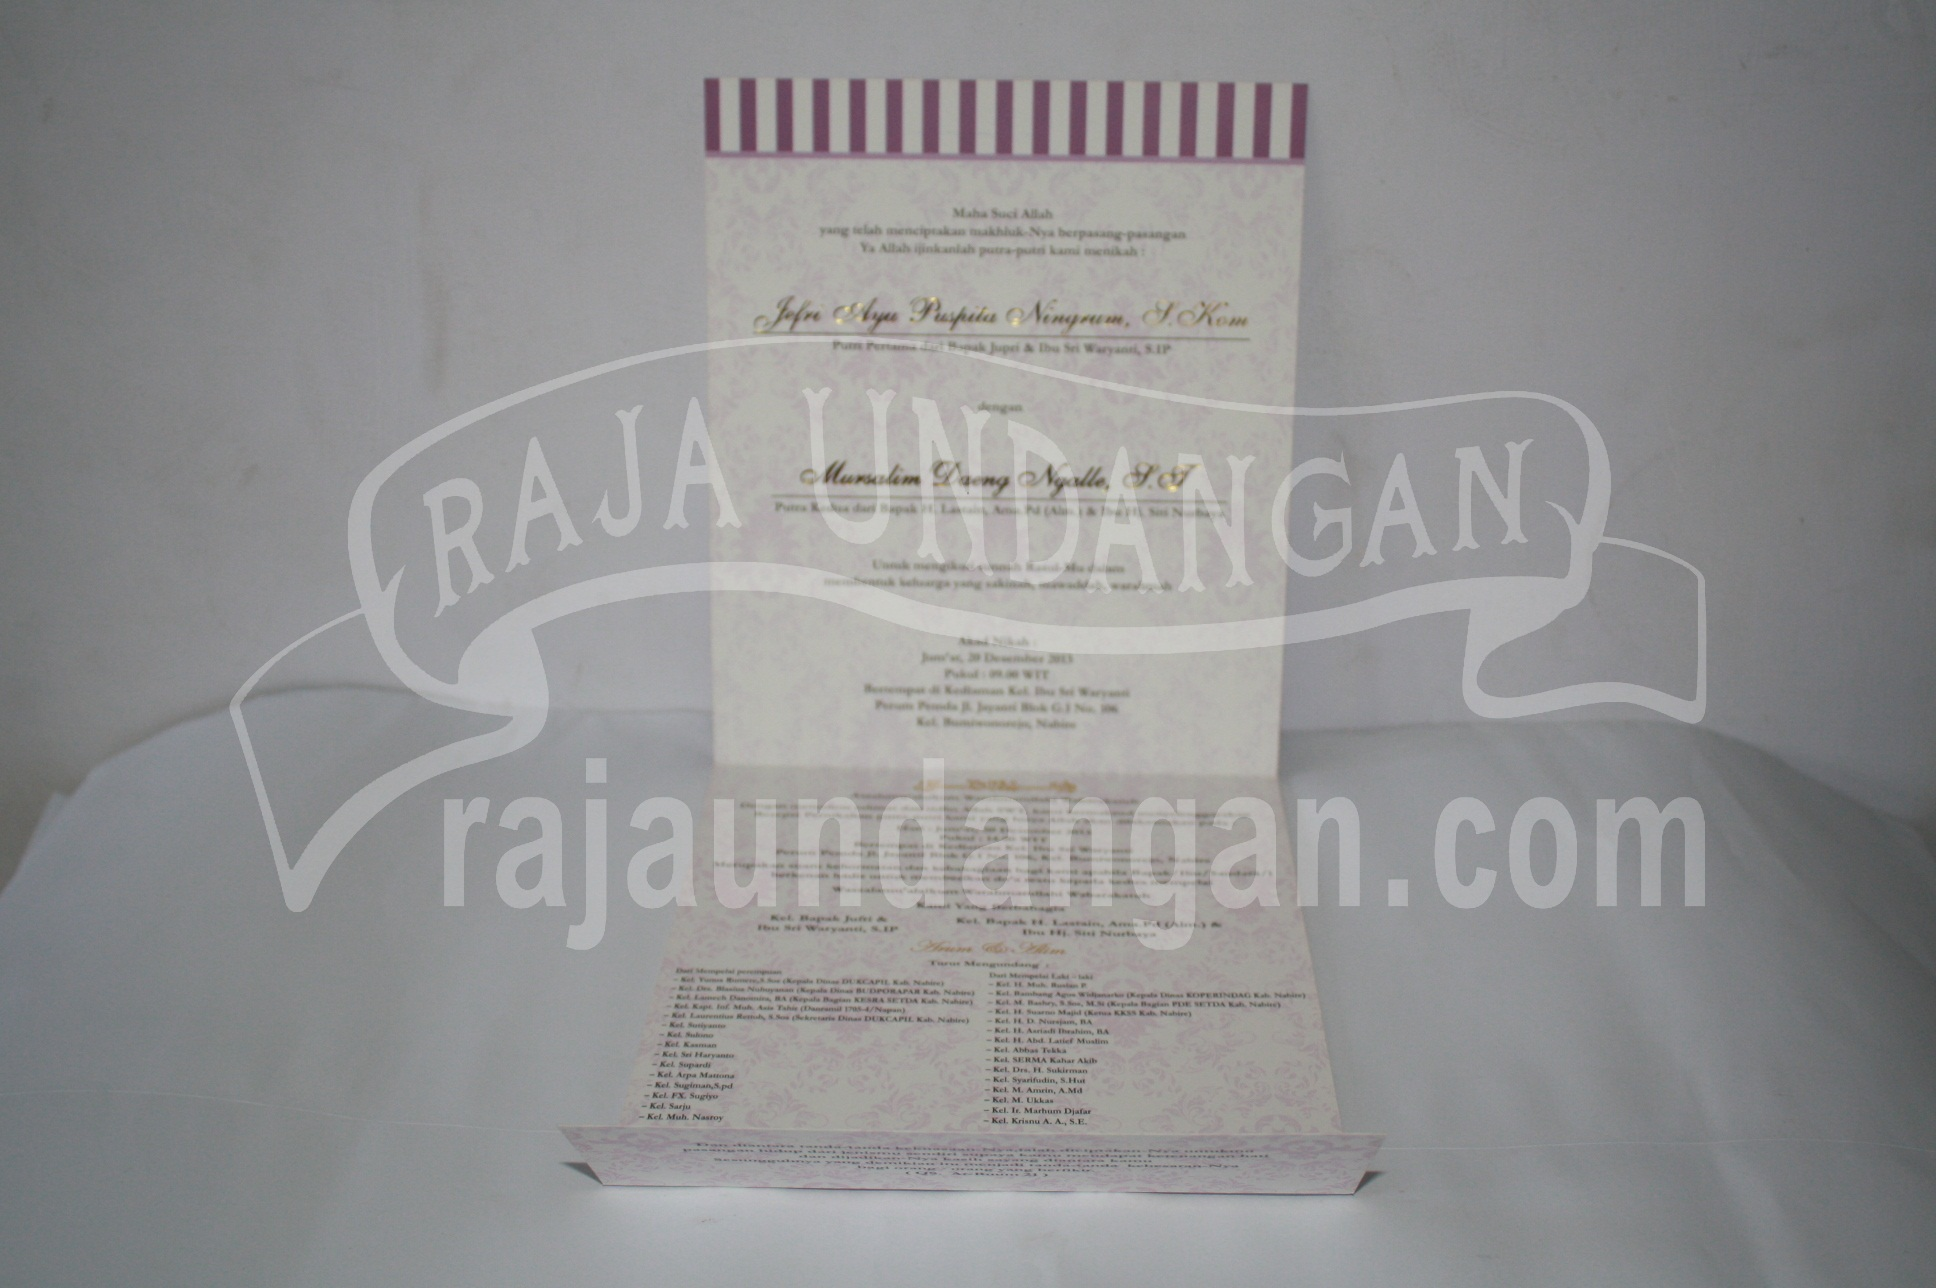 Membuat Wedding Invitations Unik dan Murah di Morokrembangan